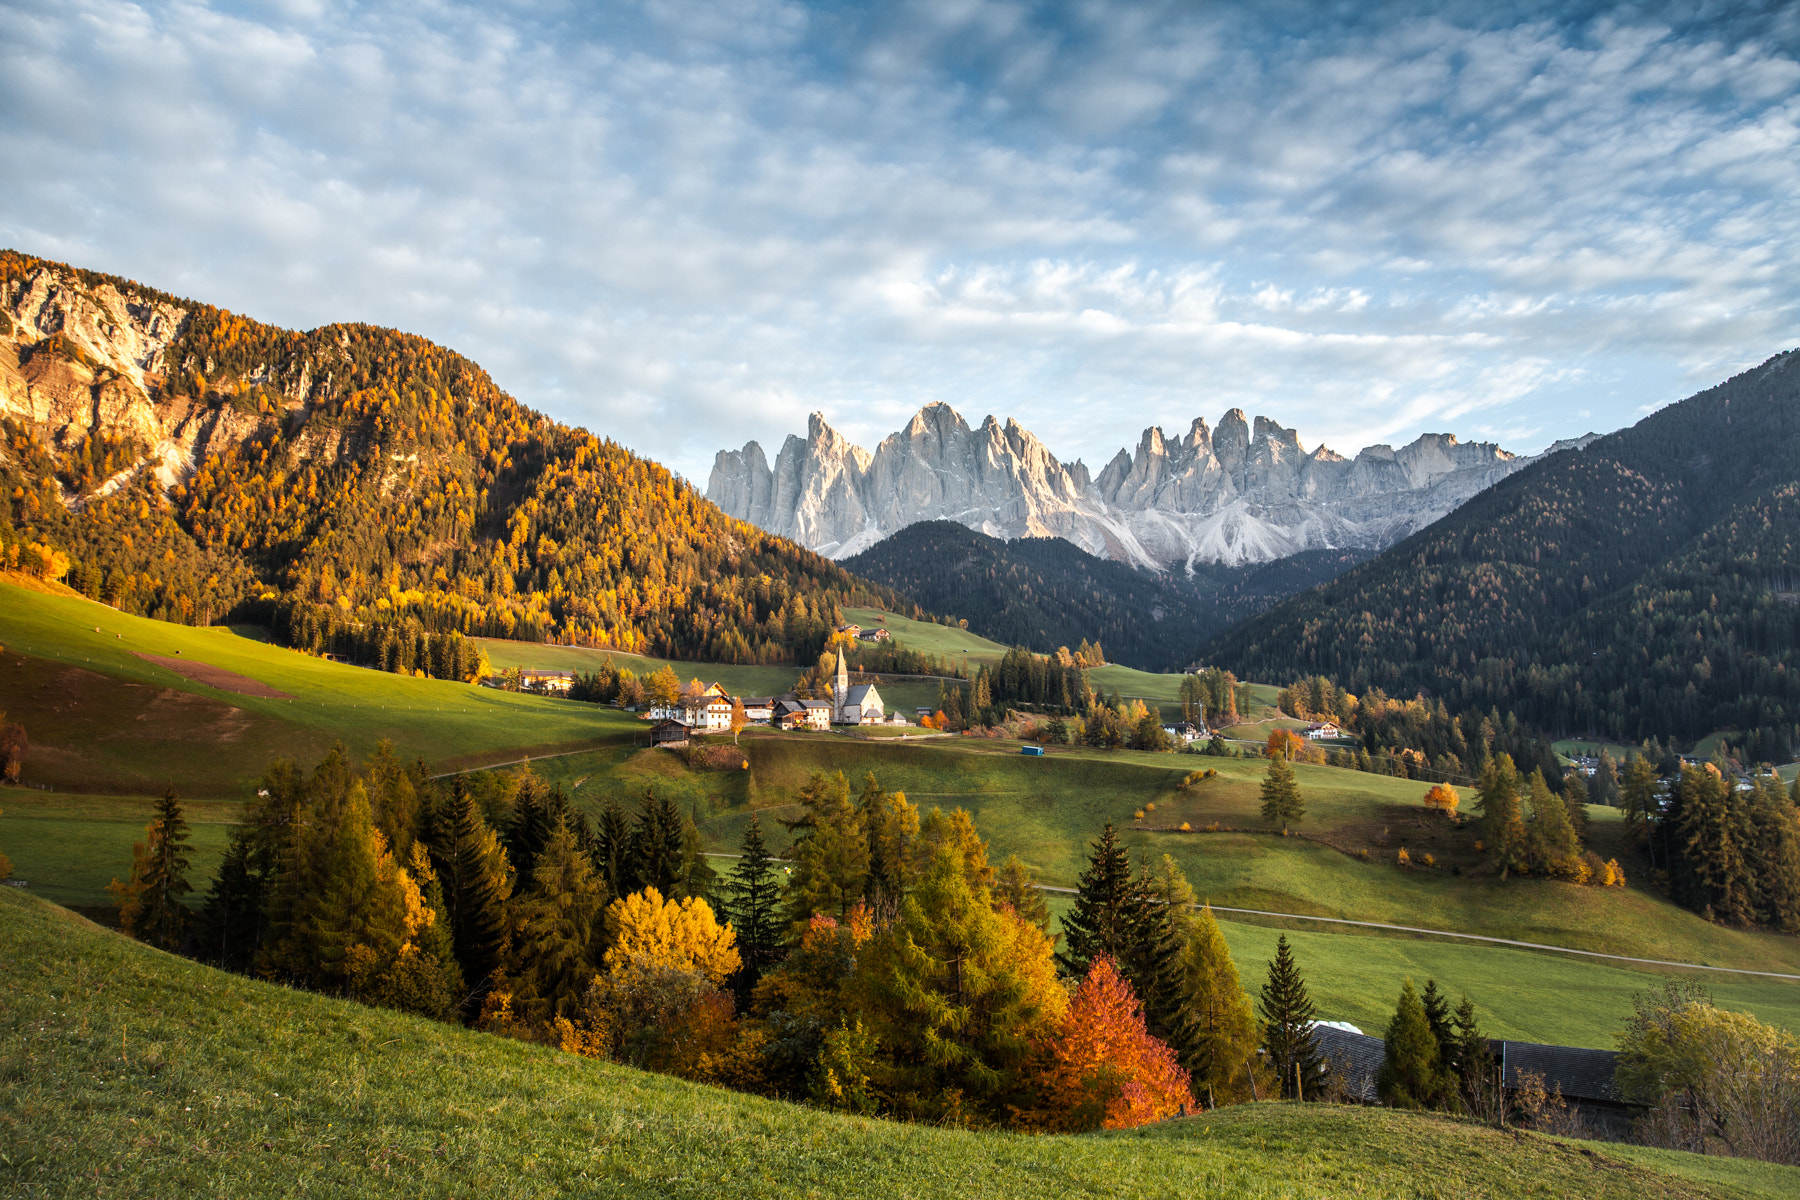 Photograph Colori d'autunno in Santa Maddalena by Jenny Coppe on 500px